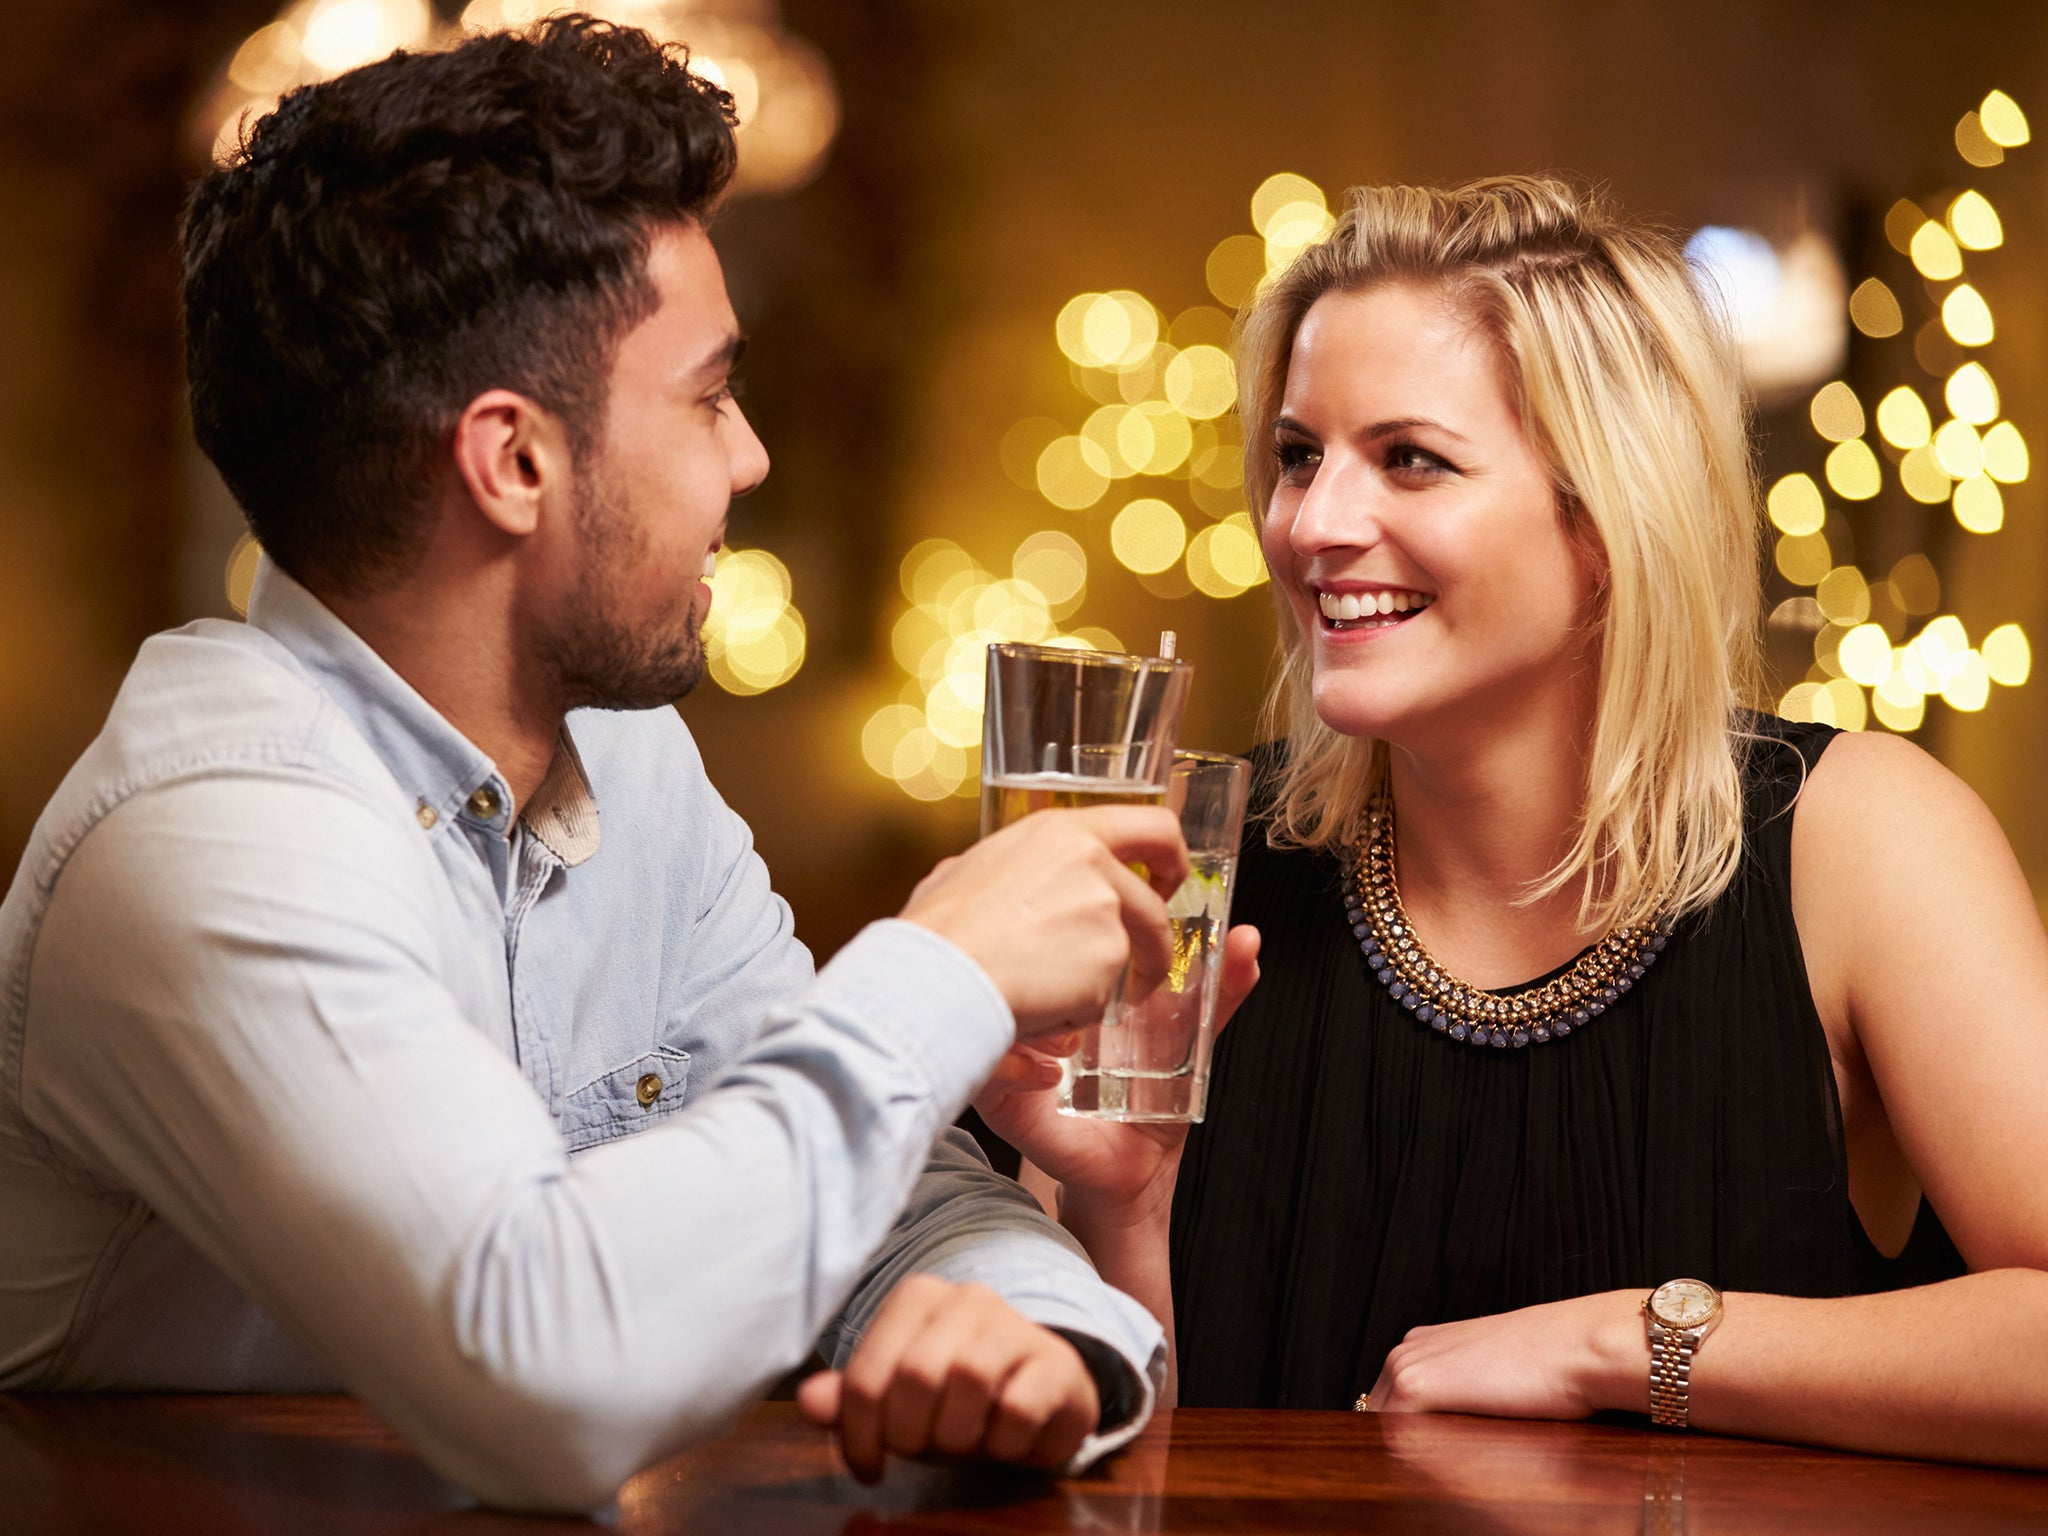 matchmakers dating The it's just lunch difference: personalized matchmaking high touch service guaranteed dates our dating experts provide an enjoyable alternative to online dating websites.